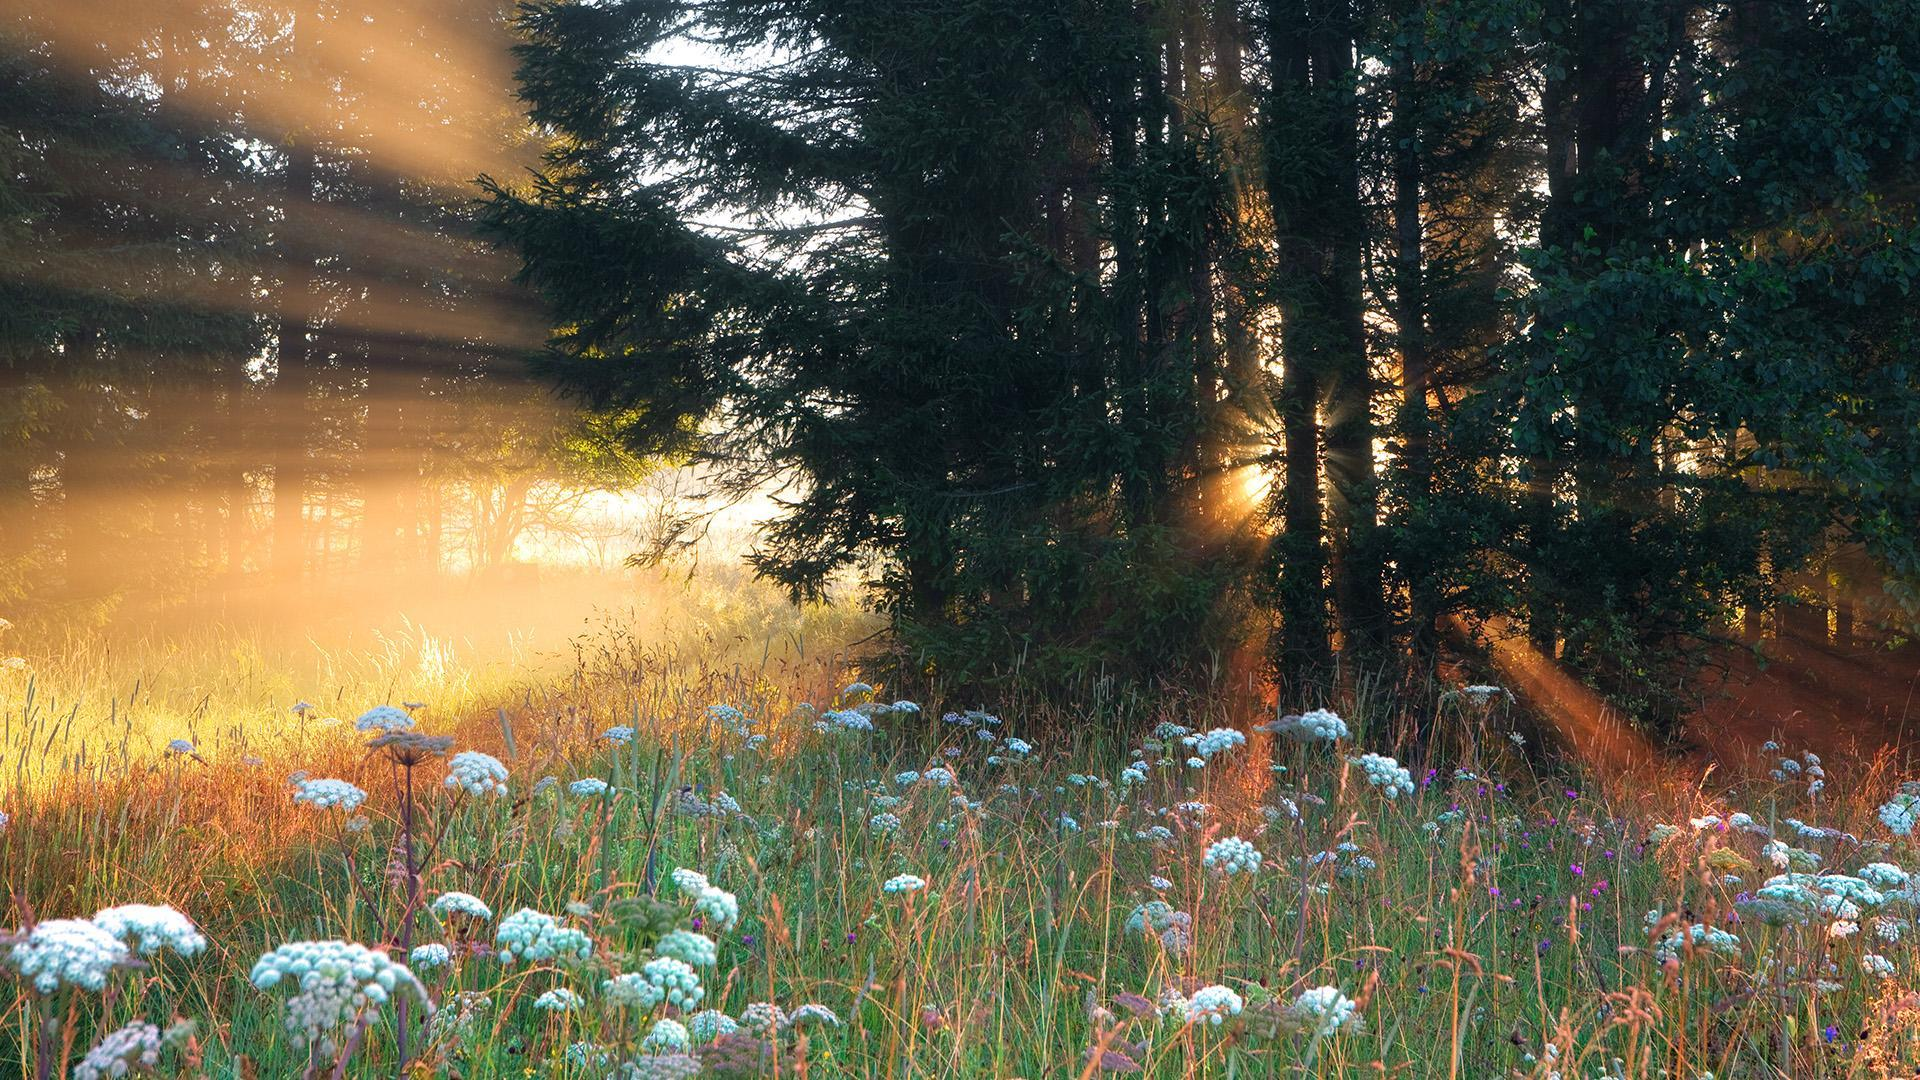 Sun Shining On Forest Flowers Hd Wallpaper Background Image